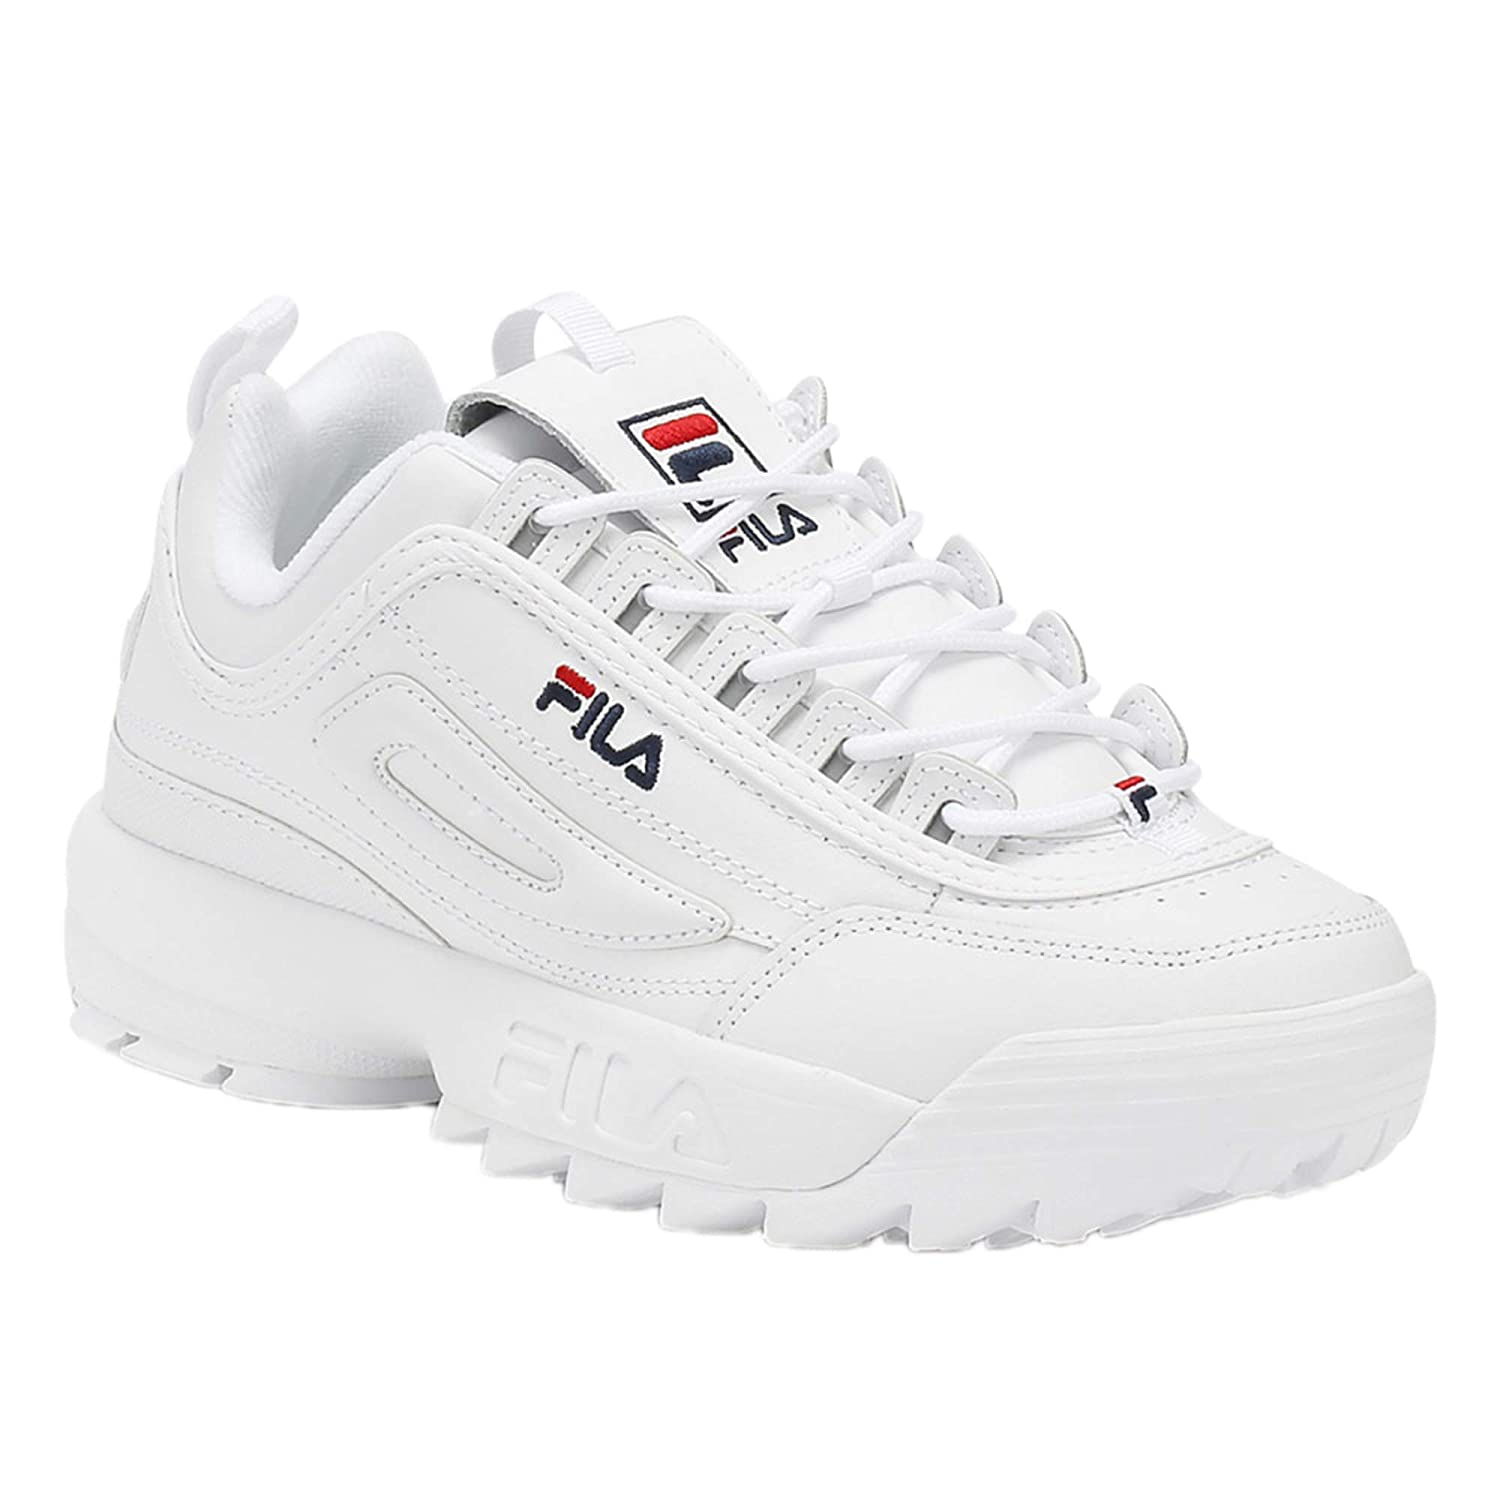 7fd3487884a Amazon.com | Fila Womens Disruptor II Premium White Navy RED Size 5 |  Fashion Sneakers